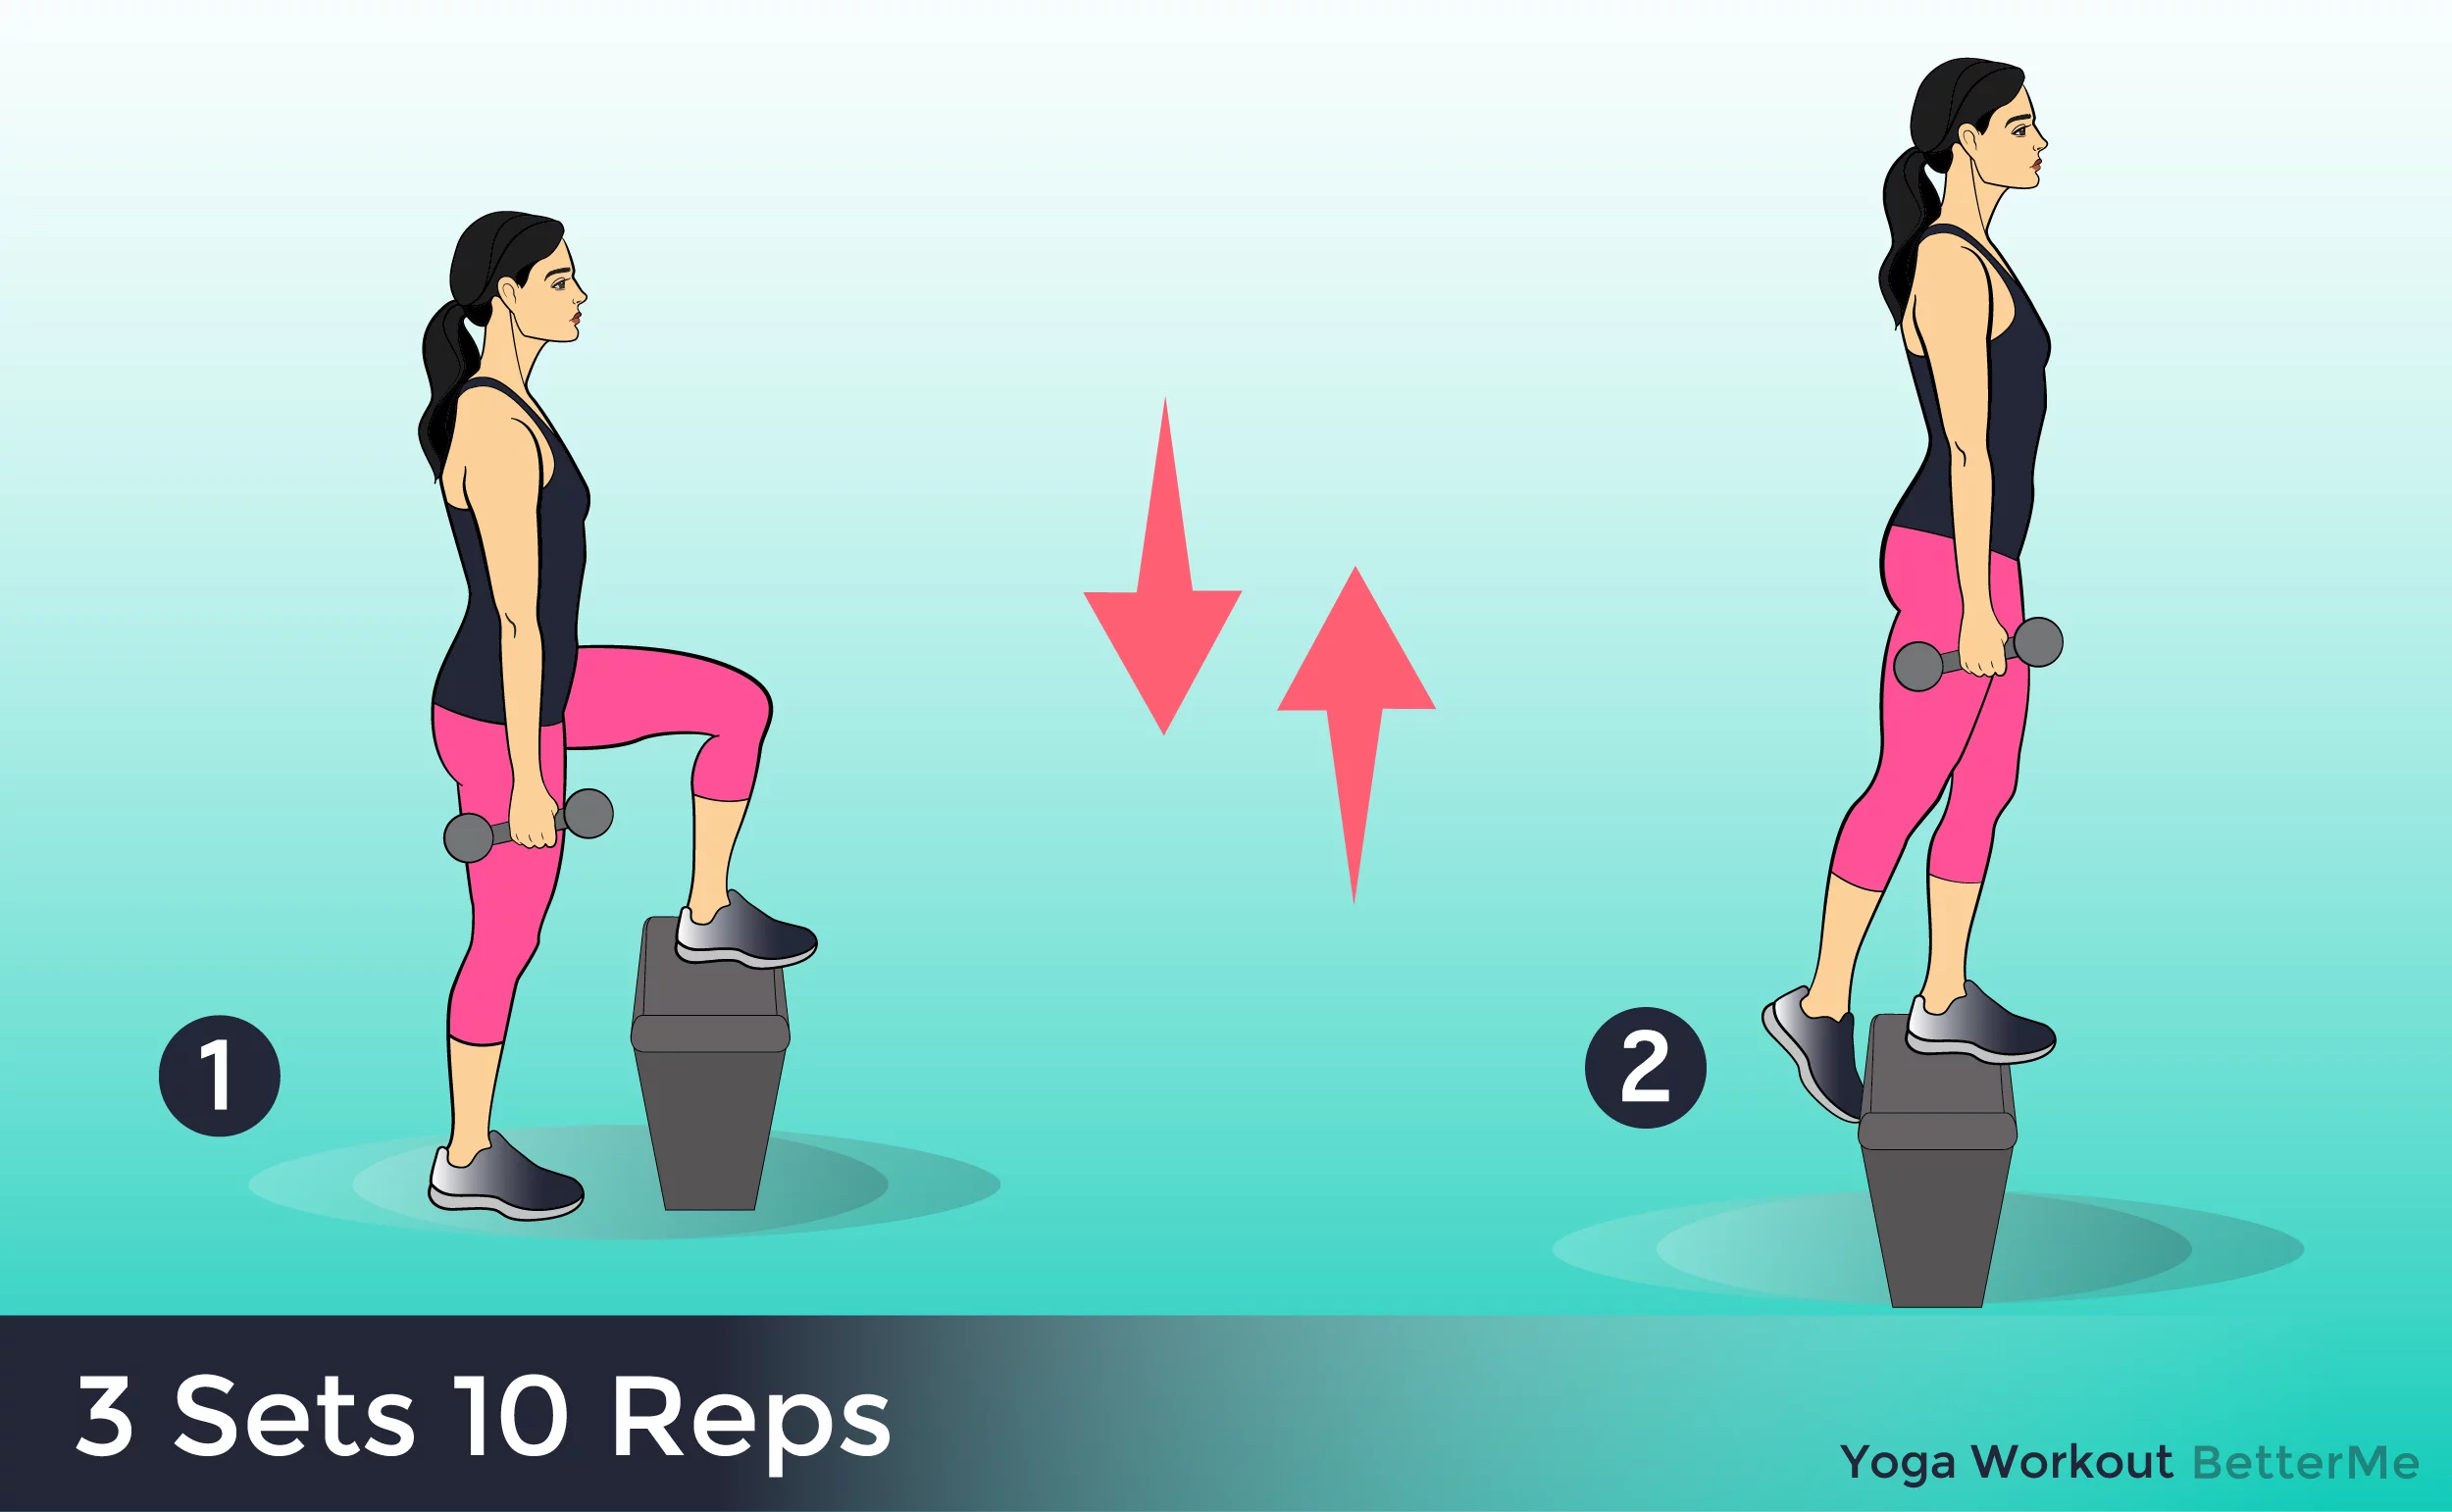 10 minutes workout that can help you get a firm lifted butt